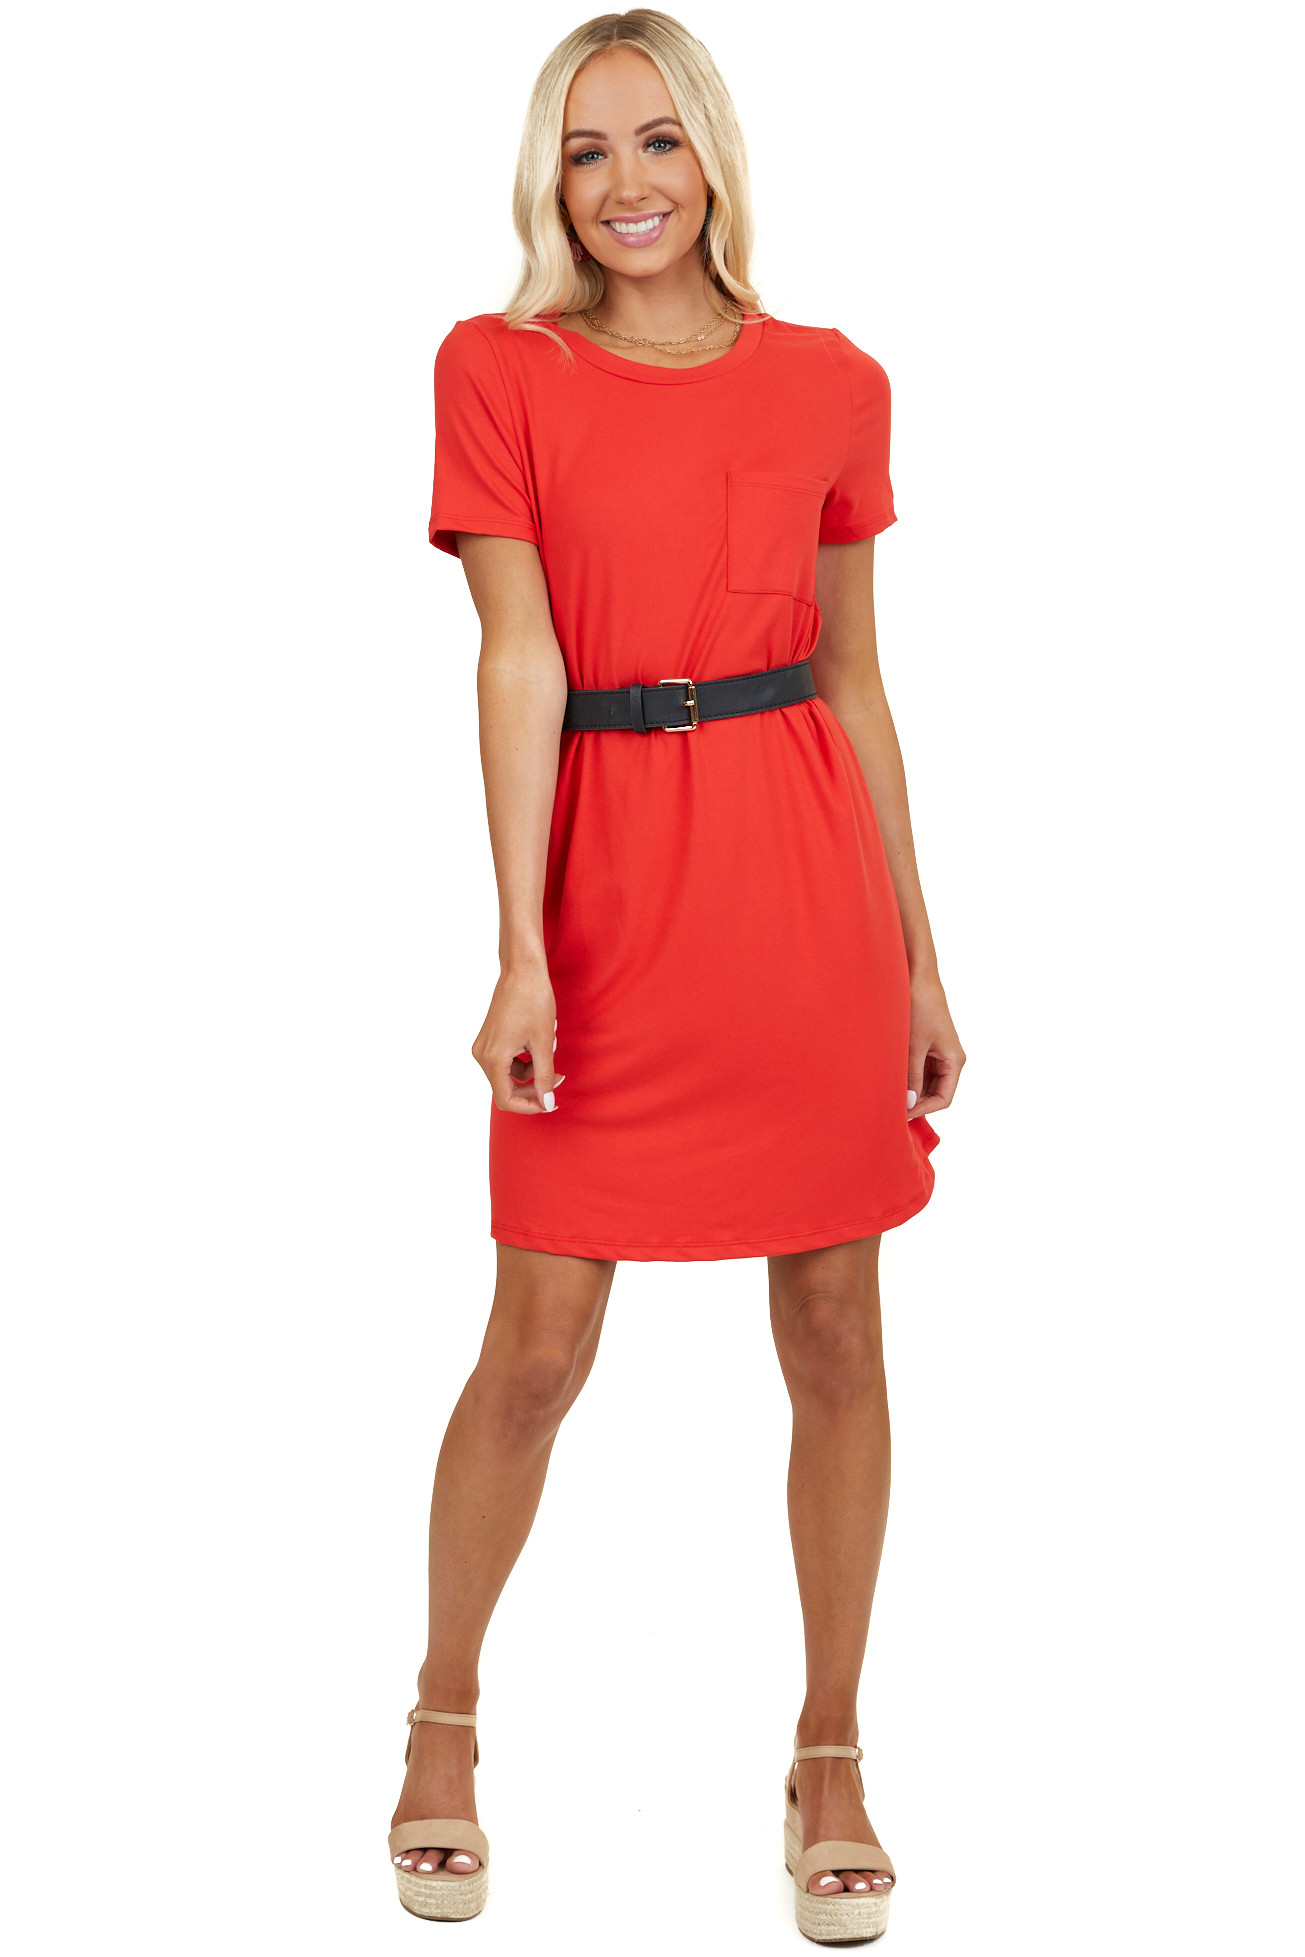 Crimson Short Sleeve Soft Knit Mini Dress with Chest Pocket